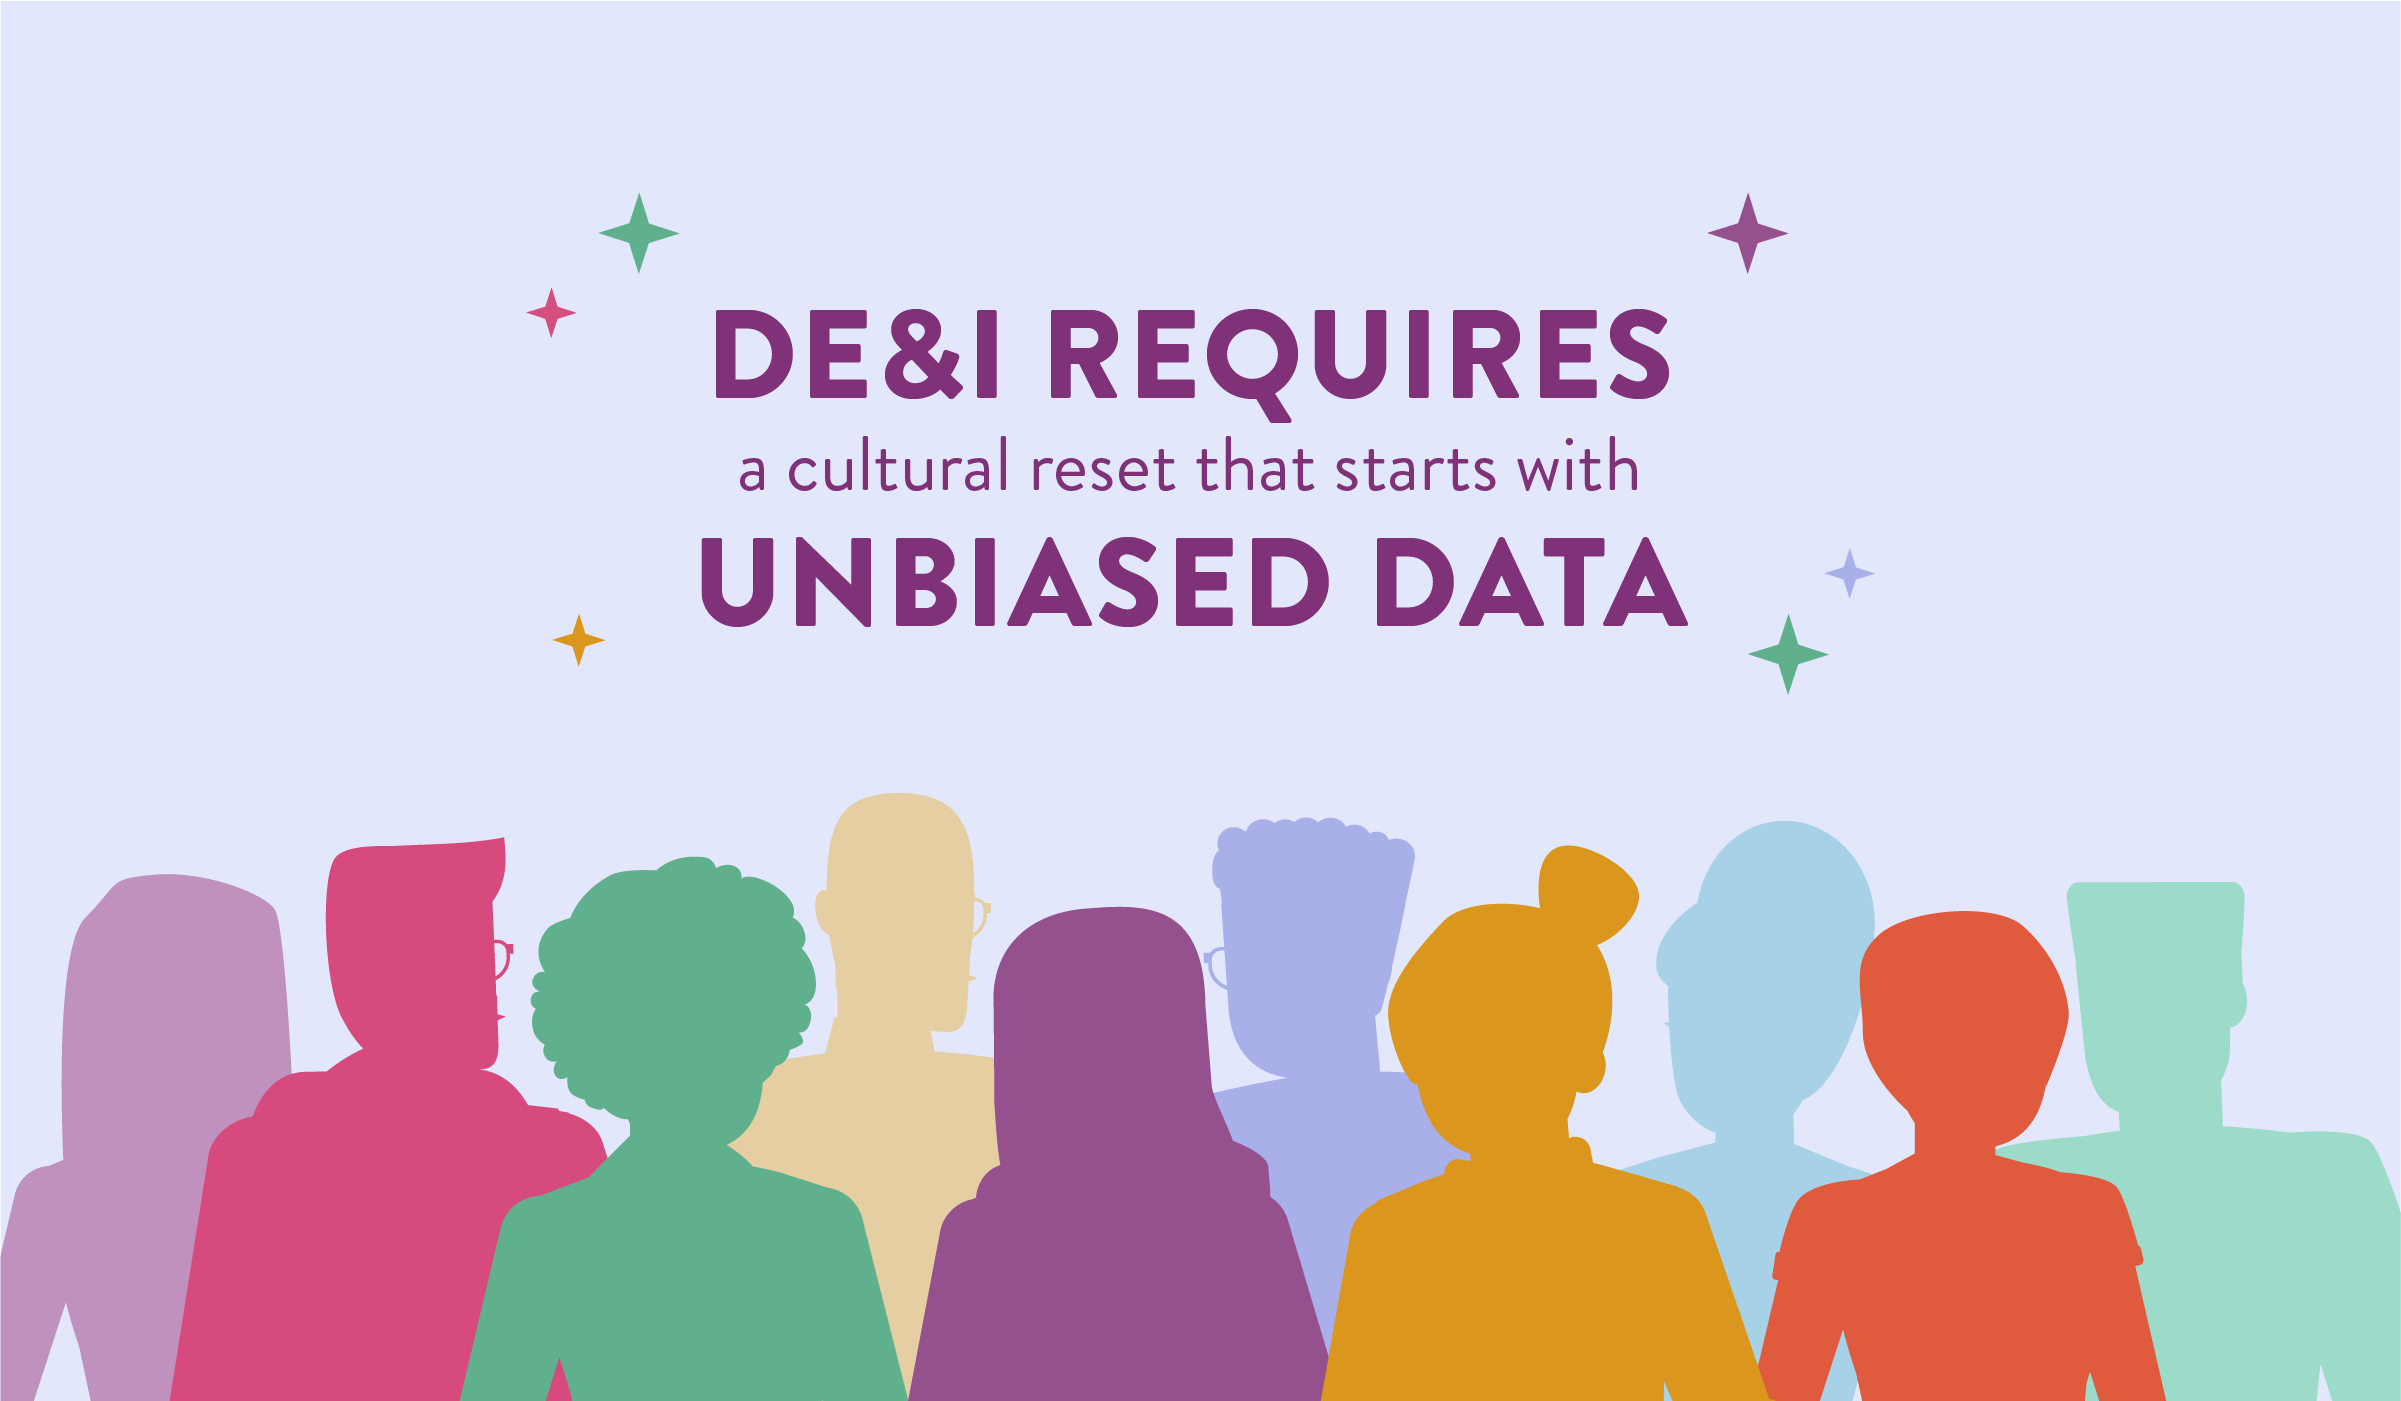 DE&I Requires a Culture Reset That Starts with Unbiased Data